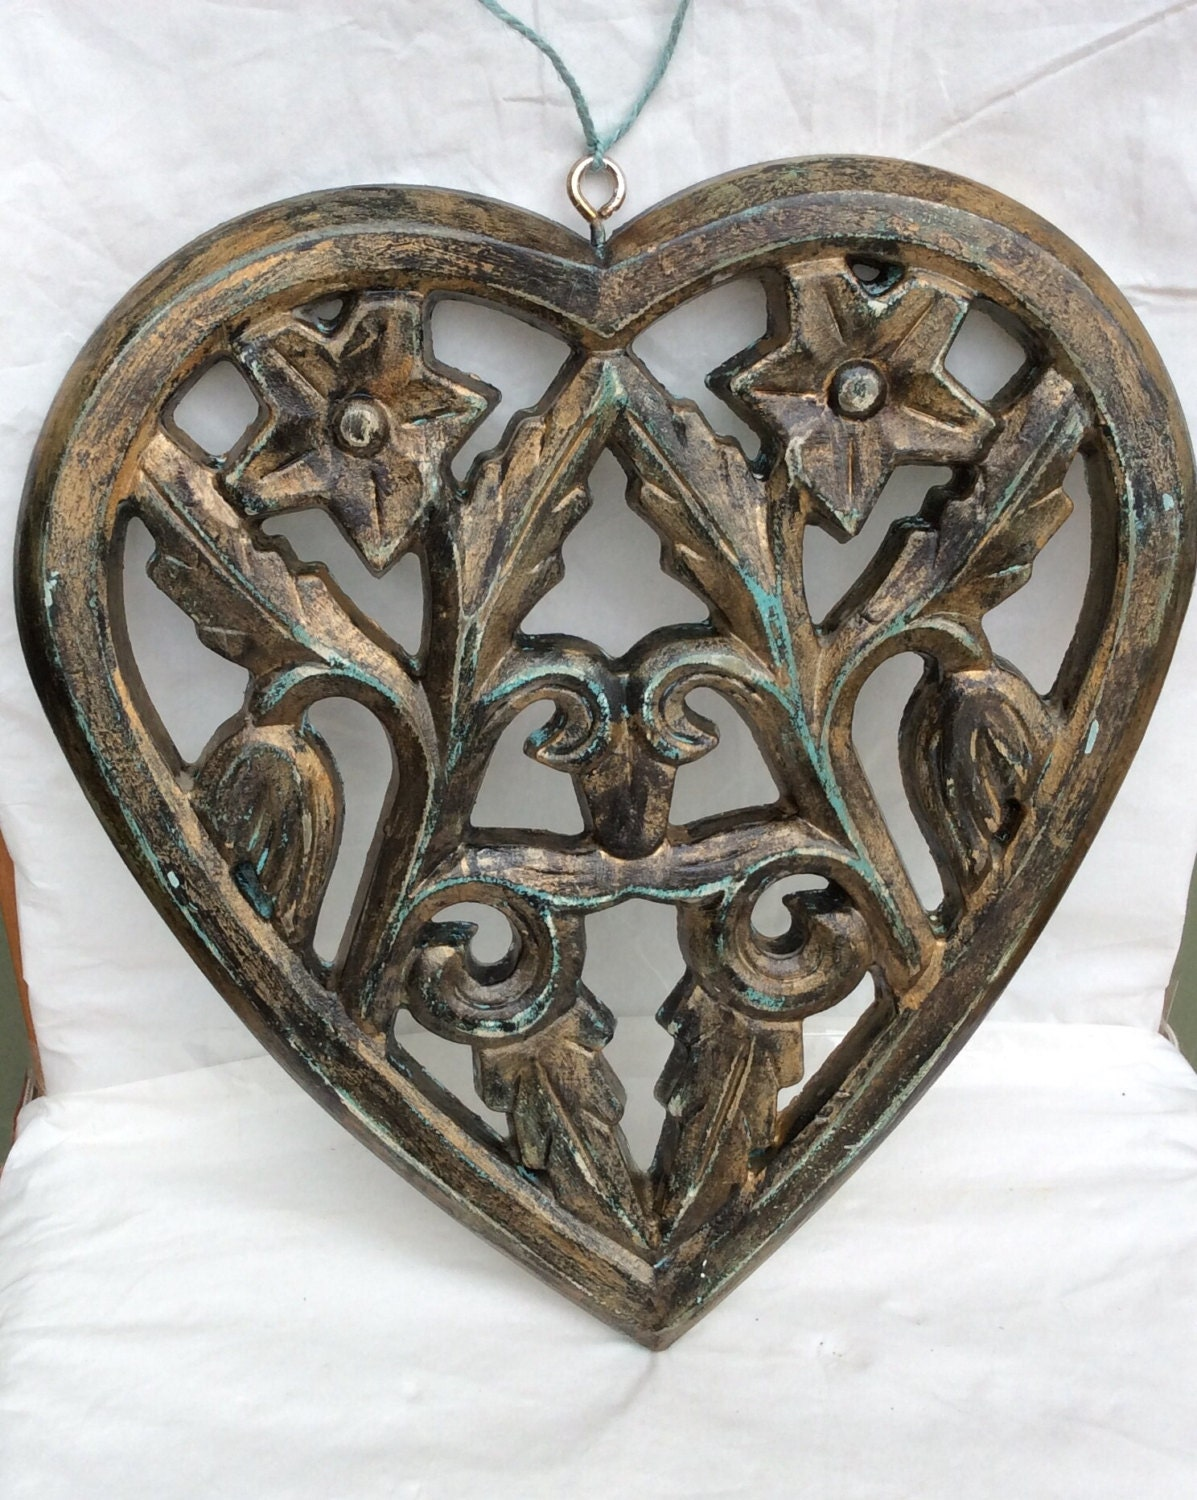 Ornate hanging wall decor heart shaped hand painted for Heart shaped decorations home